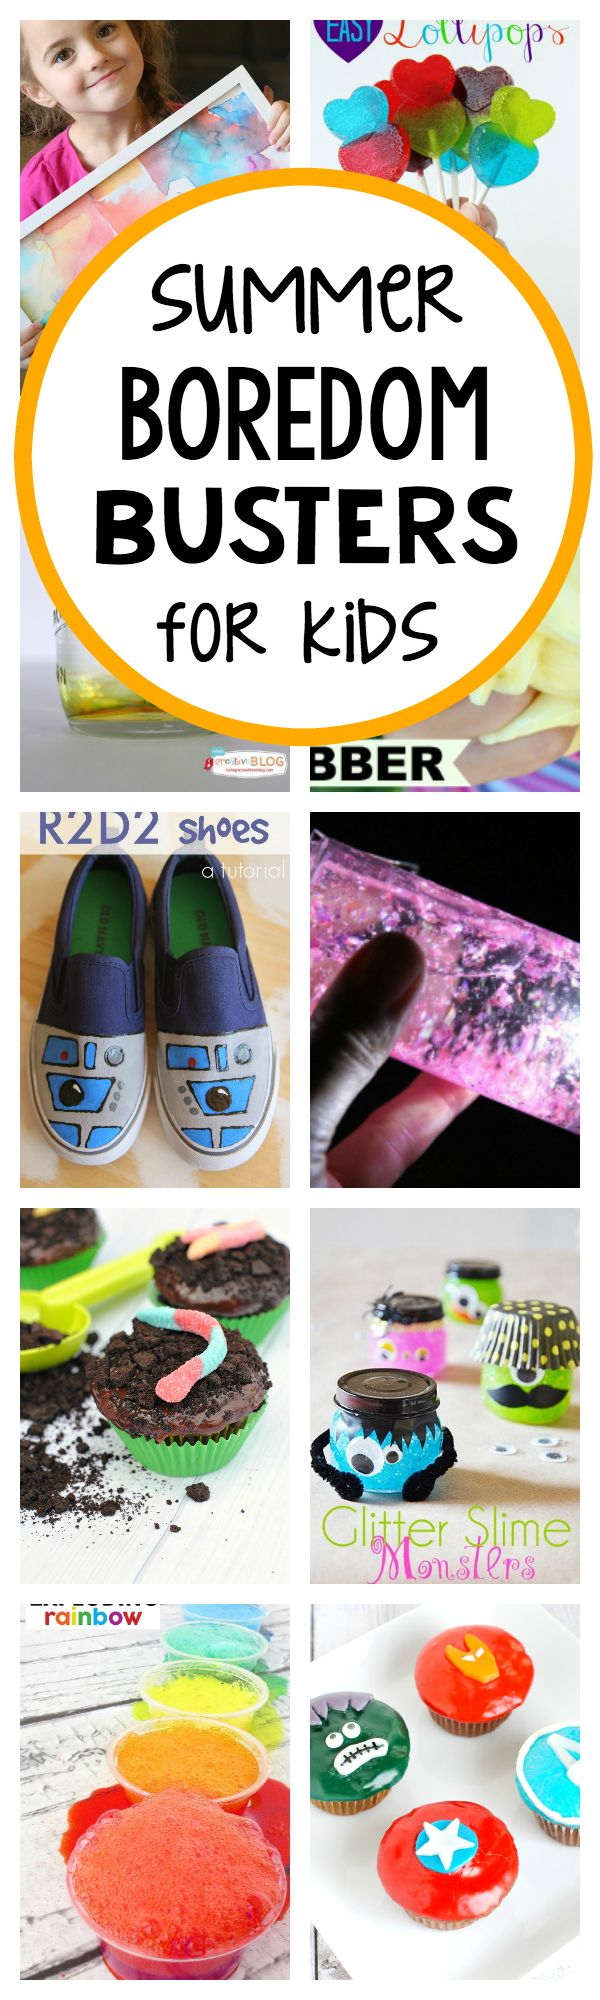 Fun Summer Activities to Keep Those Kids Entertained!